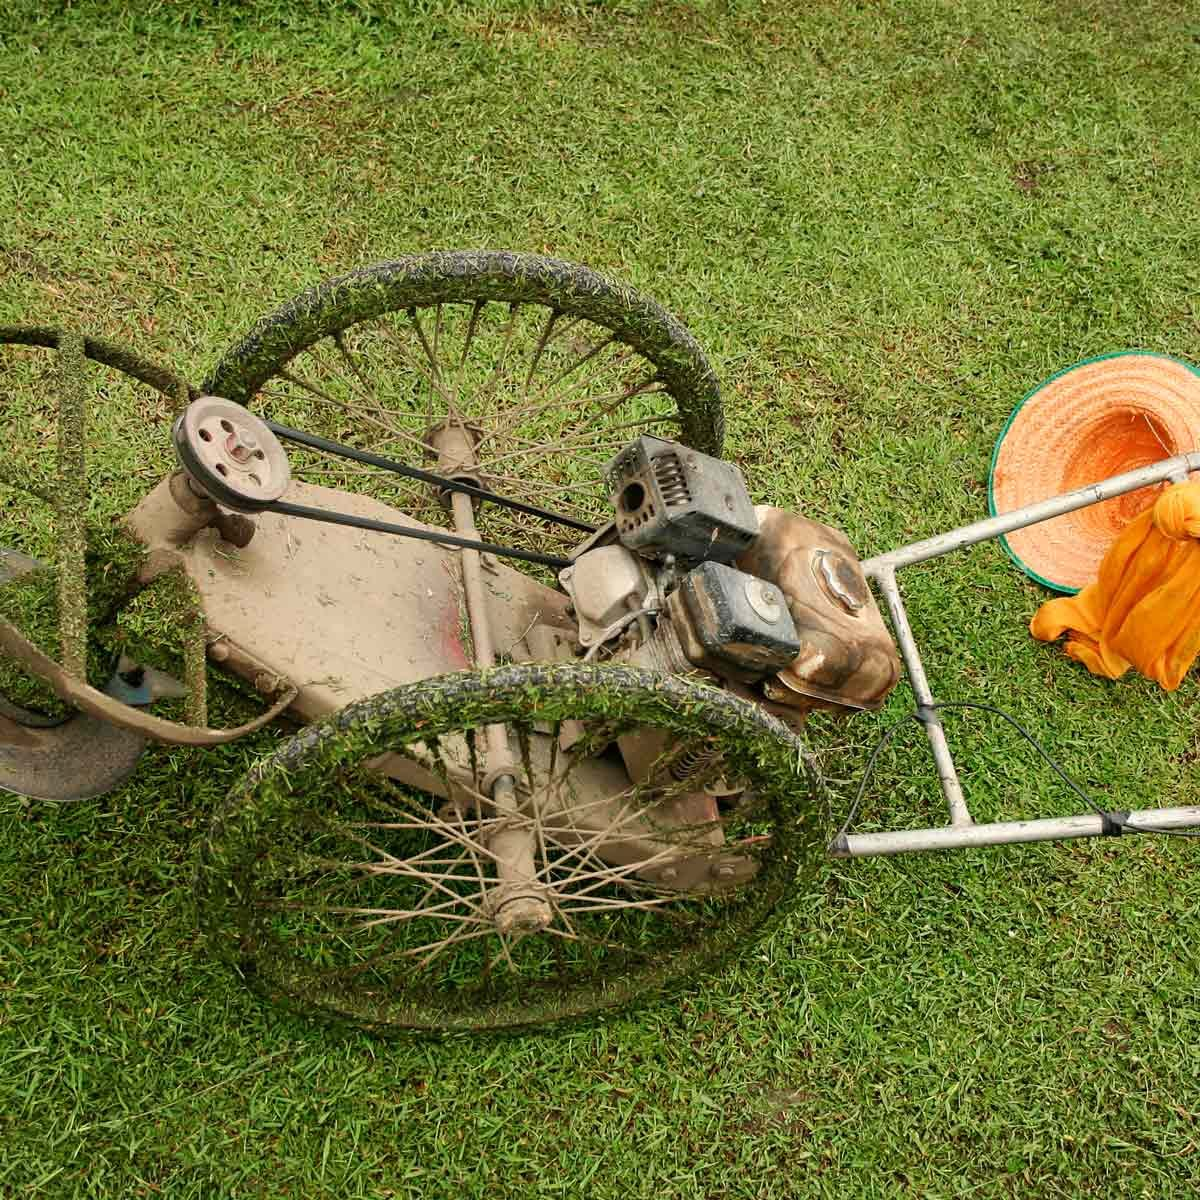 10 Vintage Lawn Mowers You Just Have To See Family Handyman